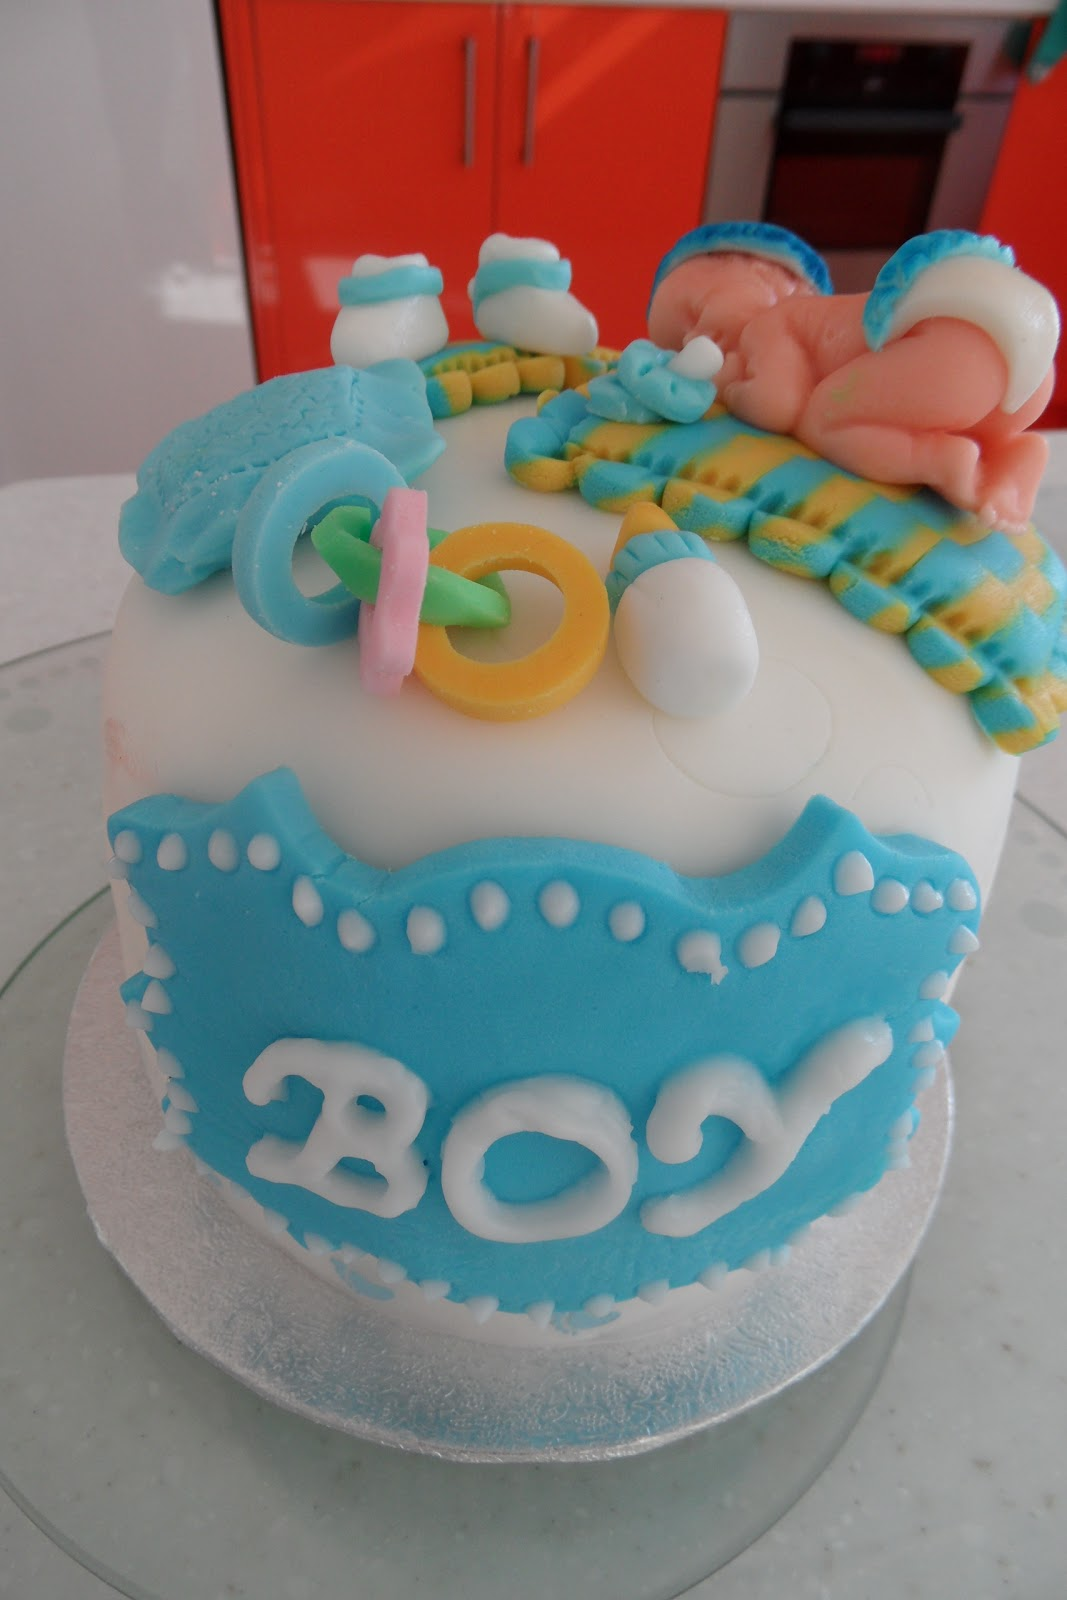 Baby Shower Cakes: Publix Baby Shower Cakes For A Boy